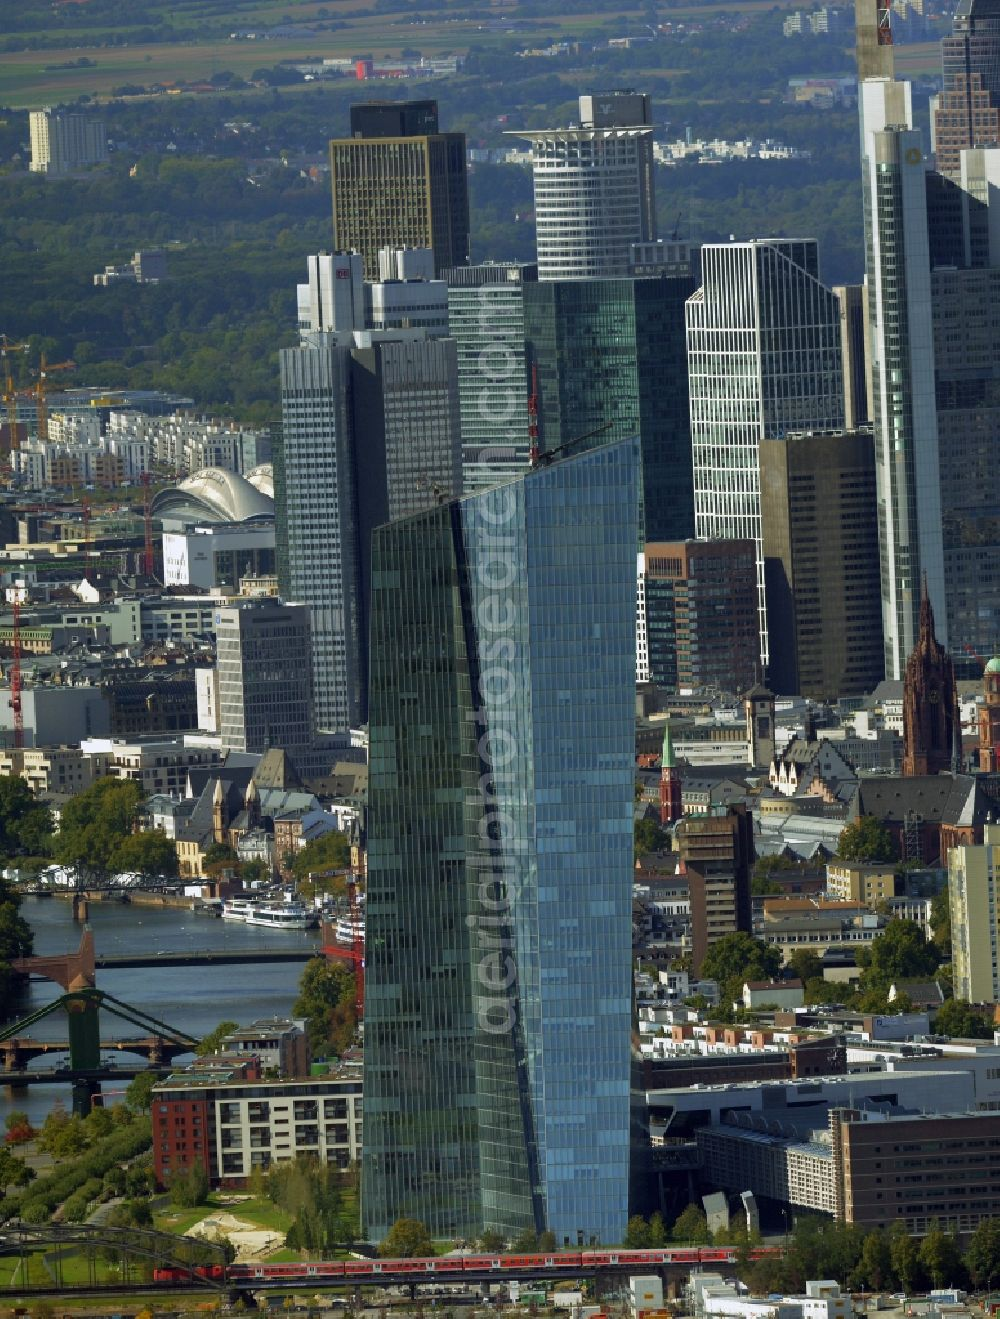 Aerial photograph Frankfurt am Main - High-rise skyscraper building and bank administration of the financial services company EZB Europaeische Zentralbank in Frankfurt in the state Hesse, Germany